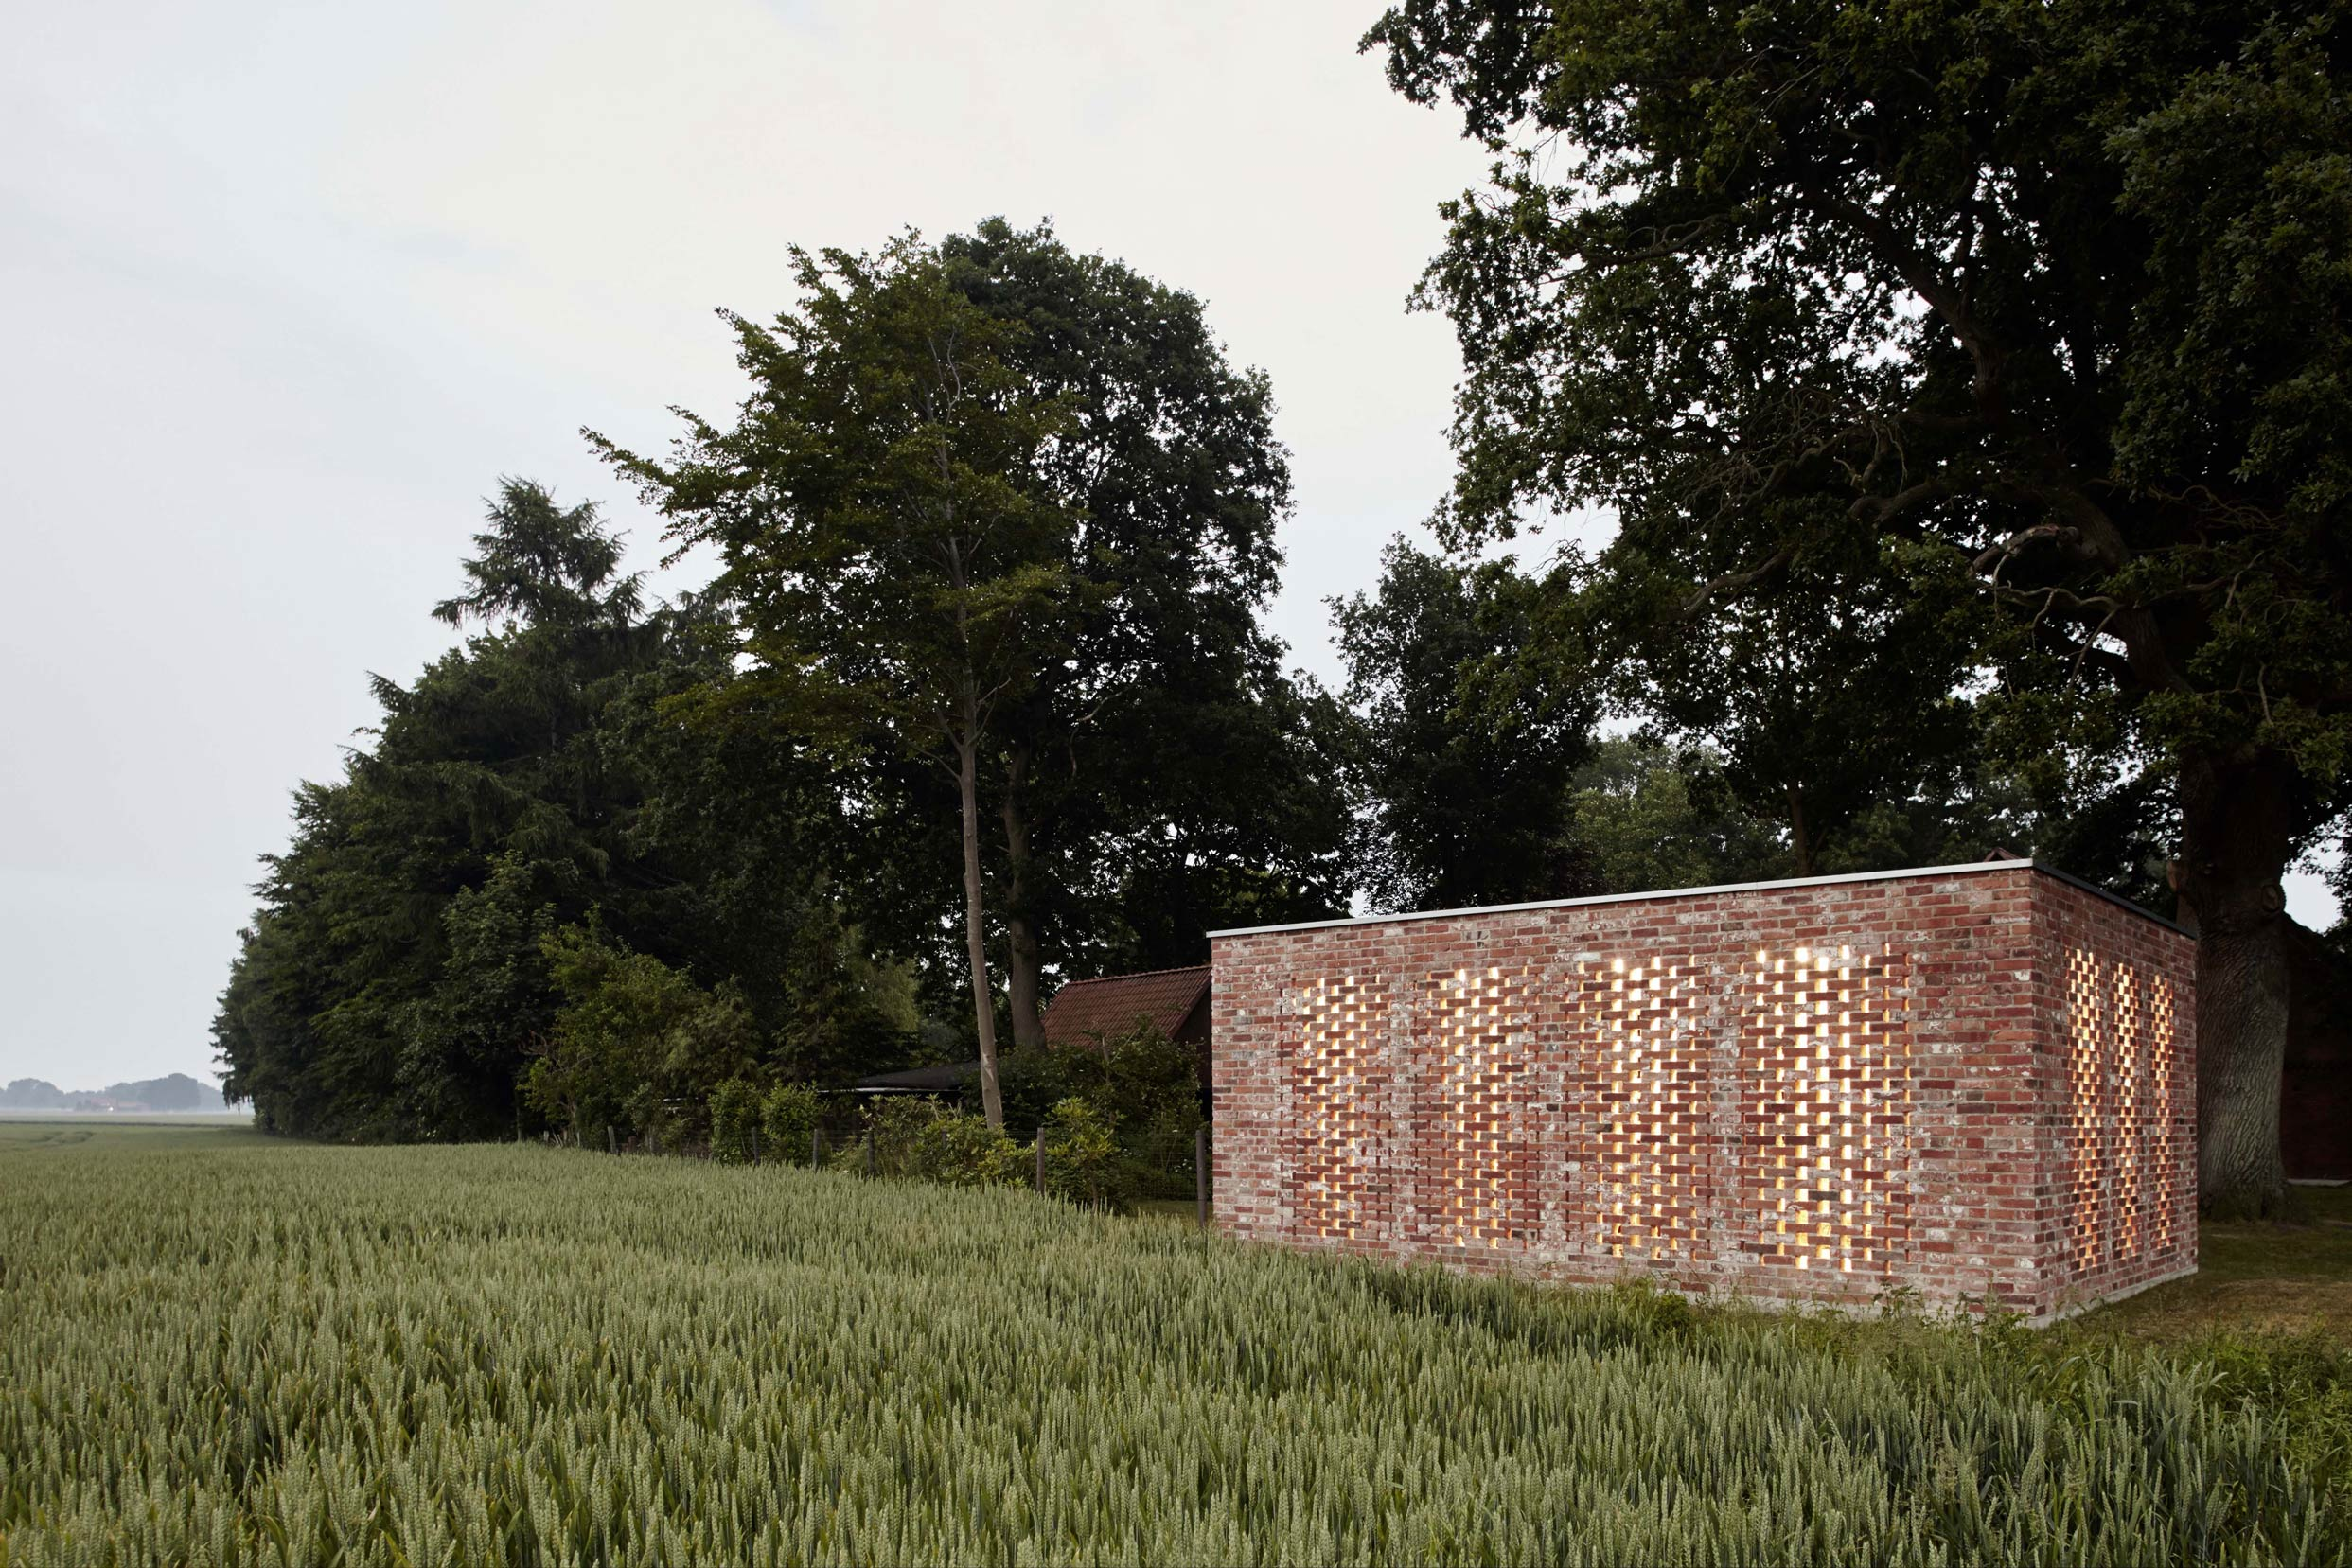 christian_burmester_architecture_wirth_remisenpavillon_18